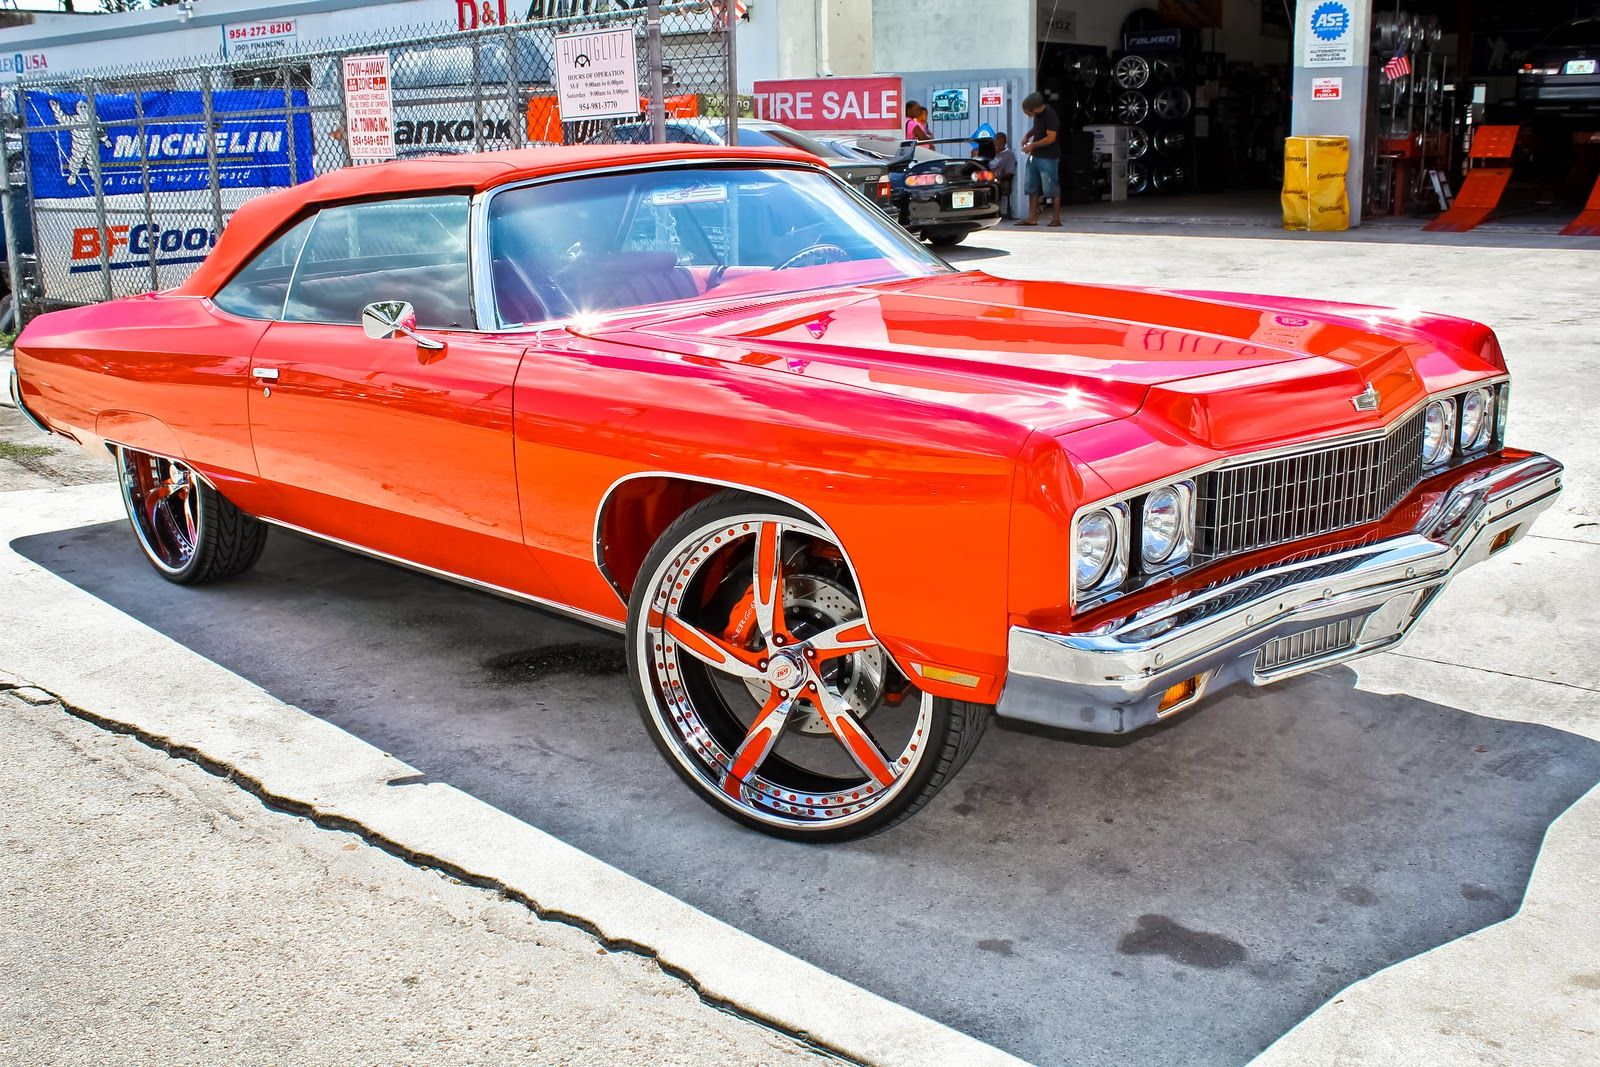 tricked out rides | Paul\'s Choice: Top 5 Donks | Donks | Pinterest ...